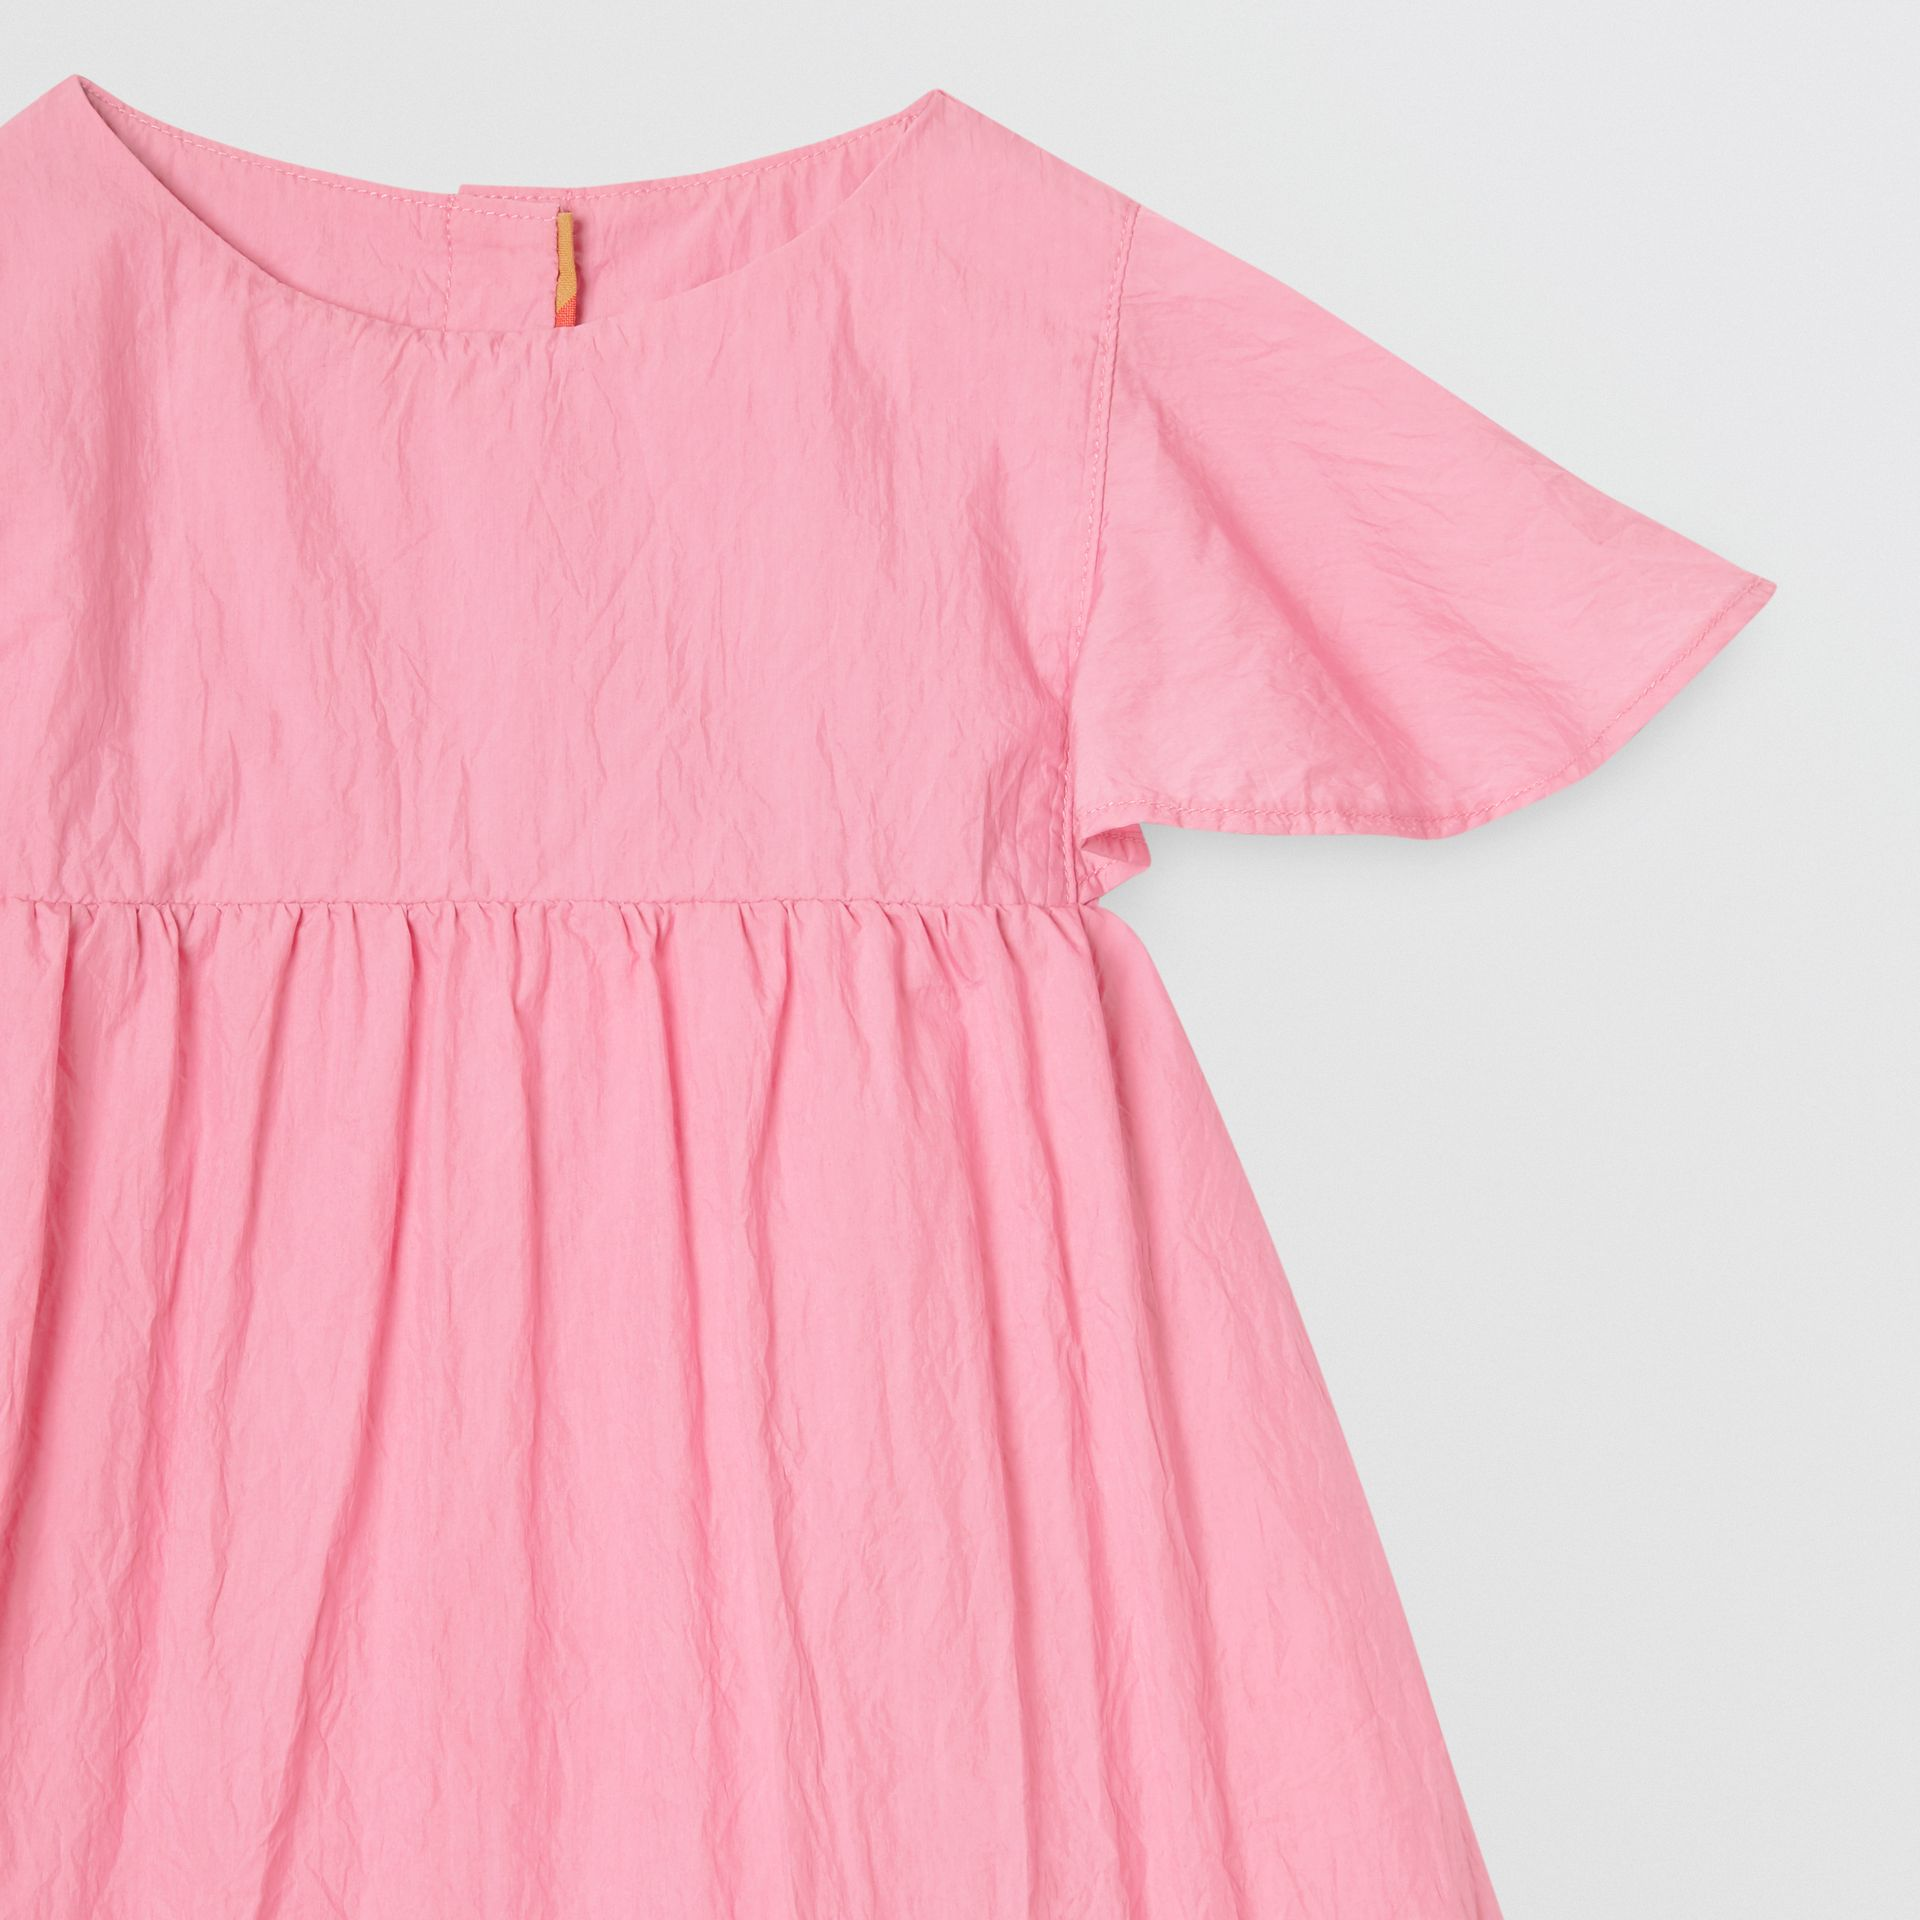 Ruffled Detail Crinkled Cotton Blend Dress in Bright Rose - Children | Burberry - gallery image 4